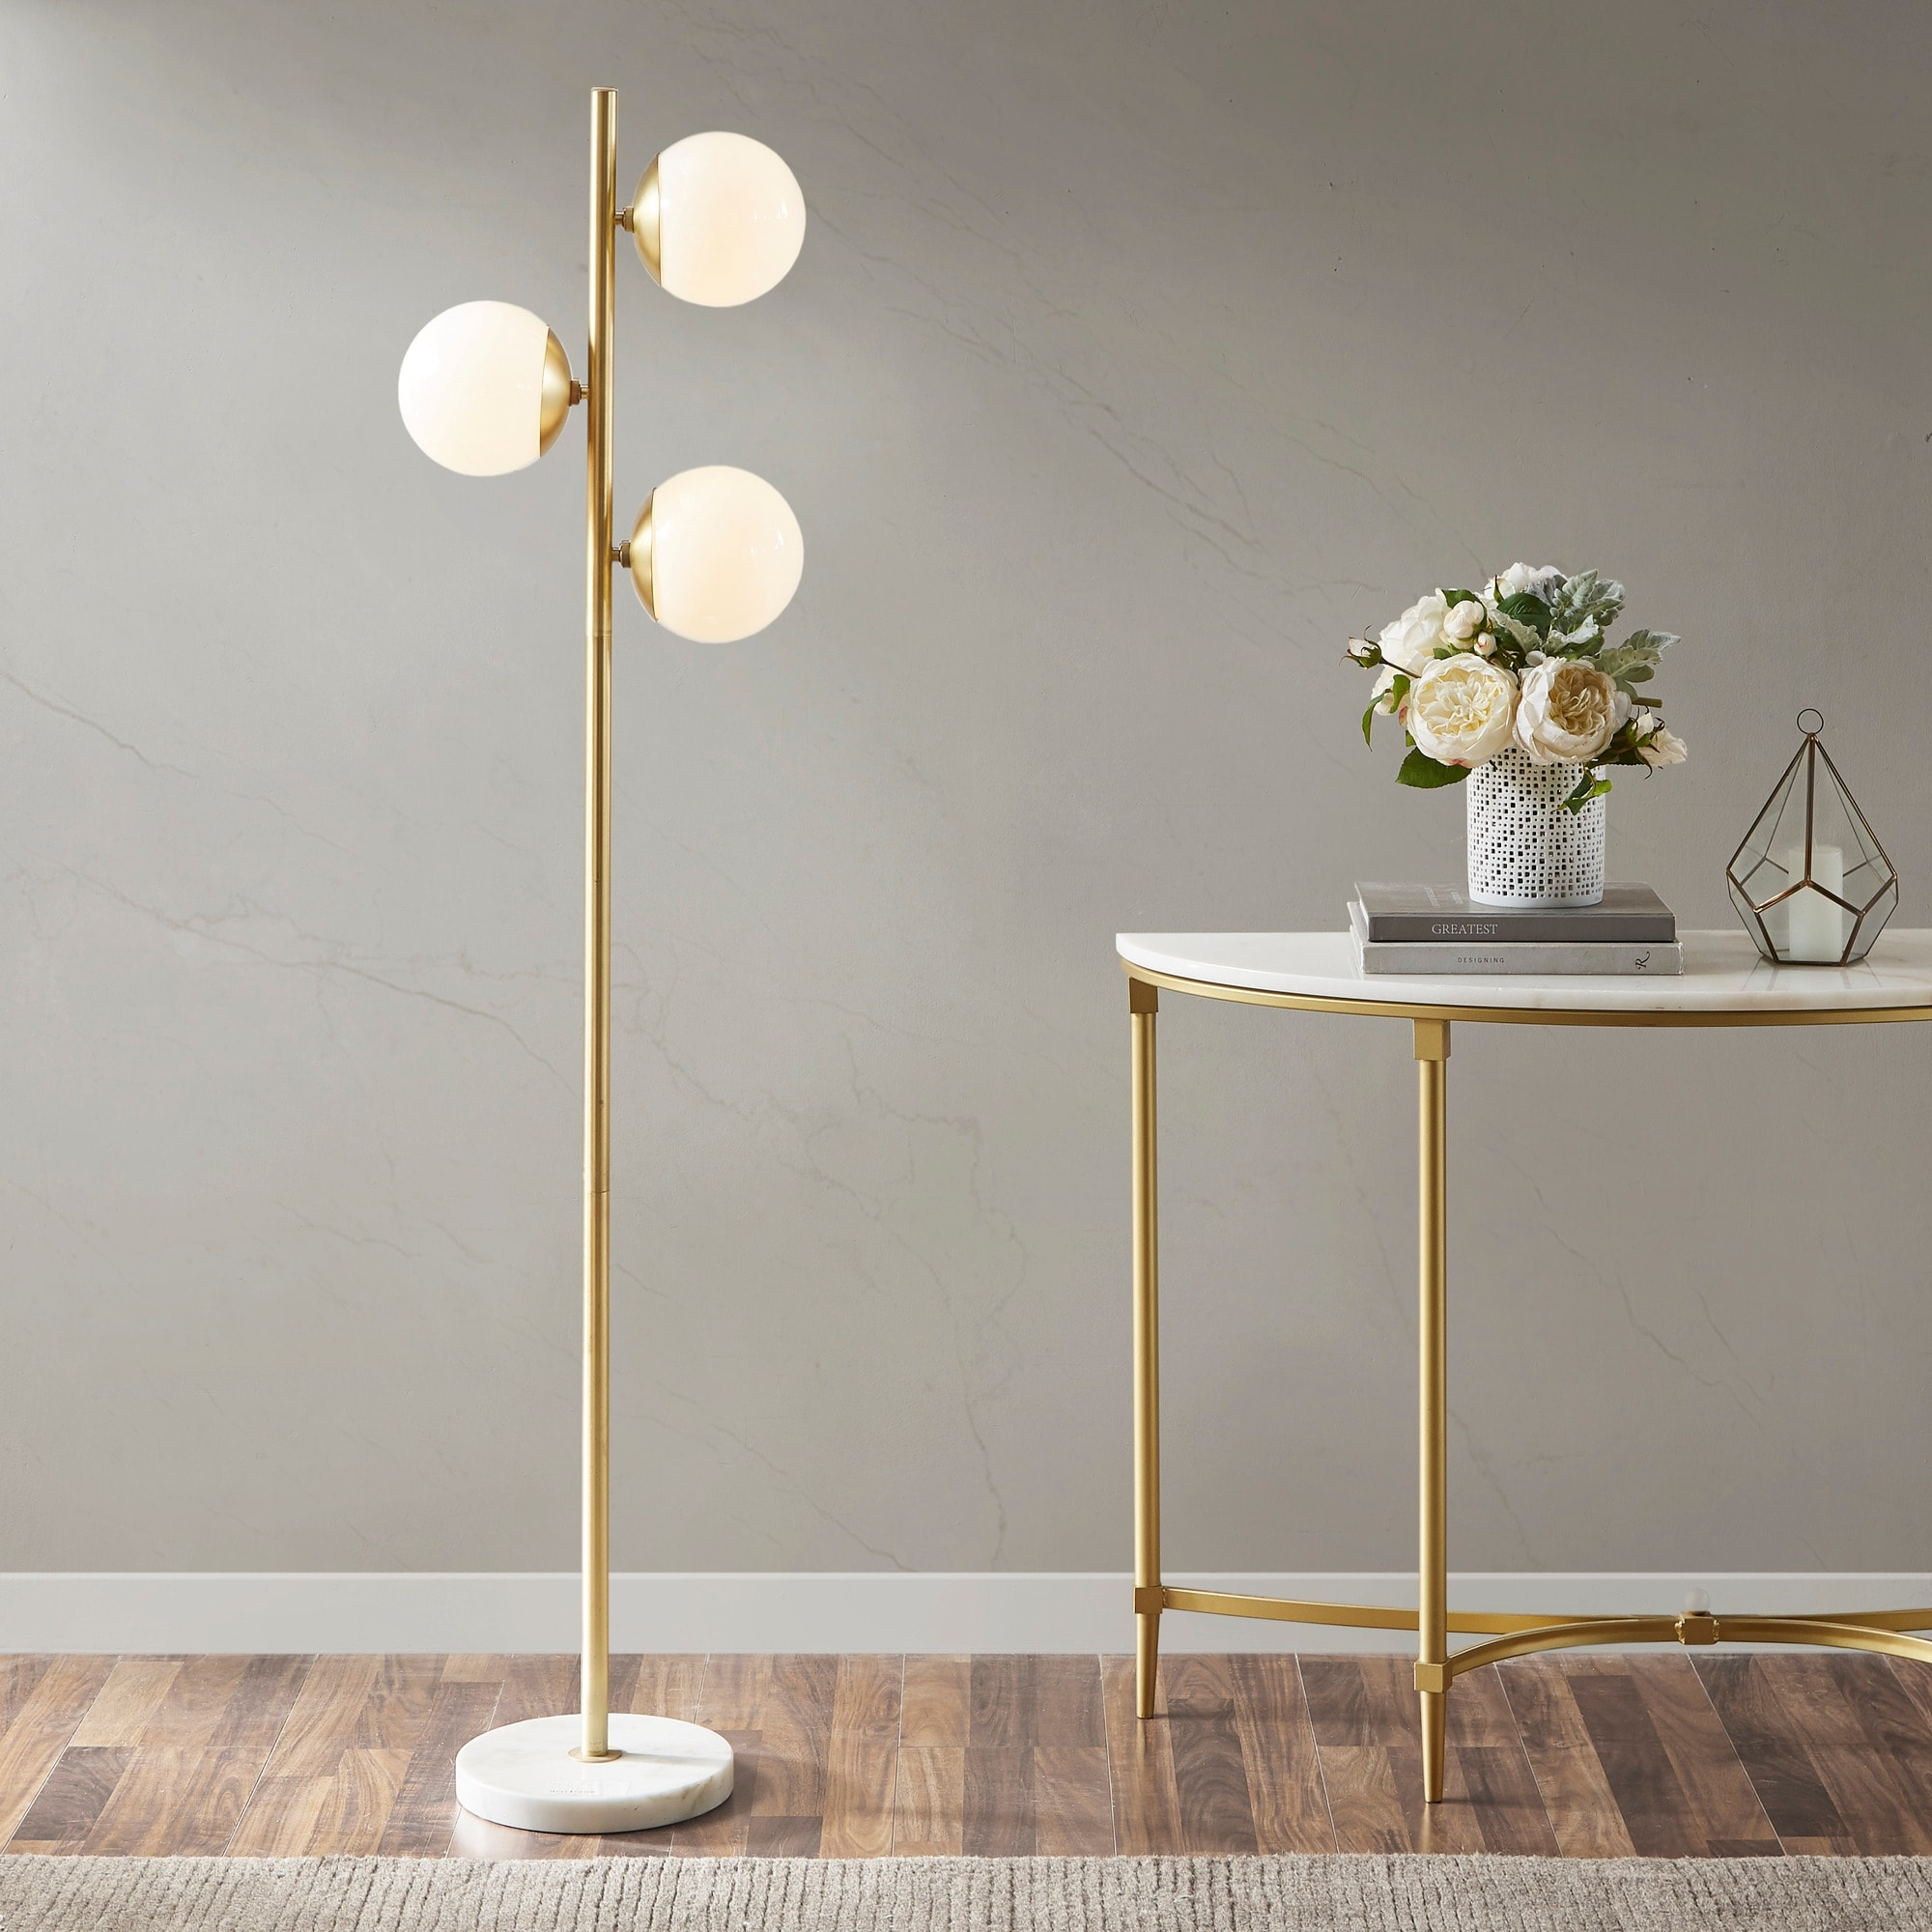 Holloway 62 Inch Floor Lamp With Round Shade By Ink Ivy On Sale Overstock 18653487 White Gold